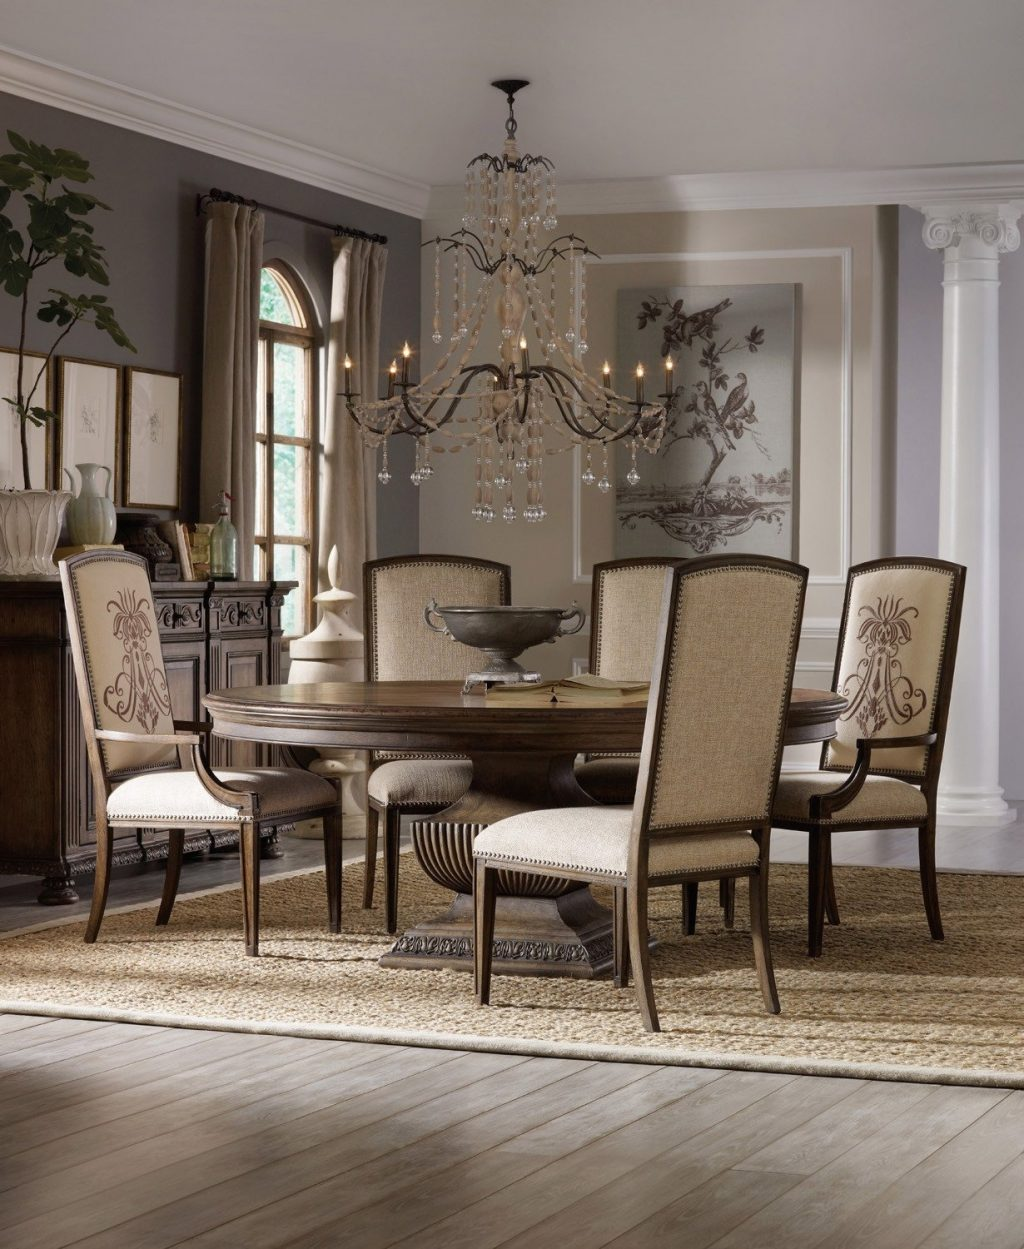 13 Used Dining Room Sets Unbelievable Image Inspirations Home